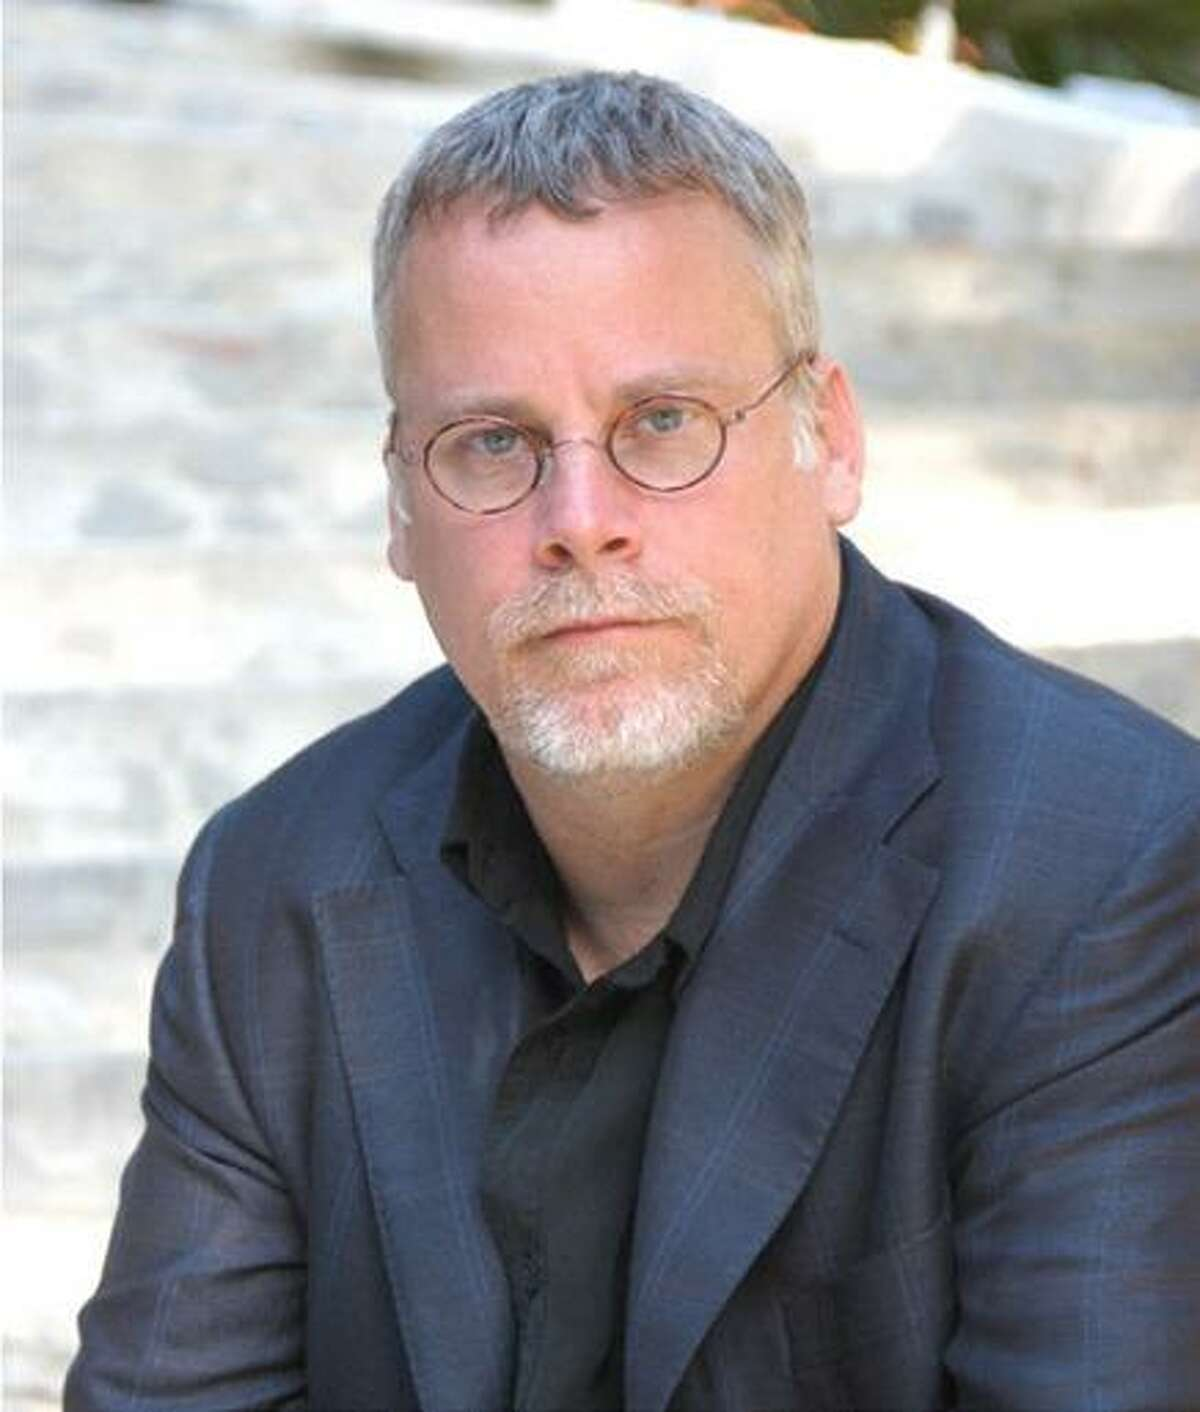 Michael Connelly published his 30th overall novel, which debuted a new woman detective lead character, in July.